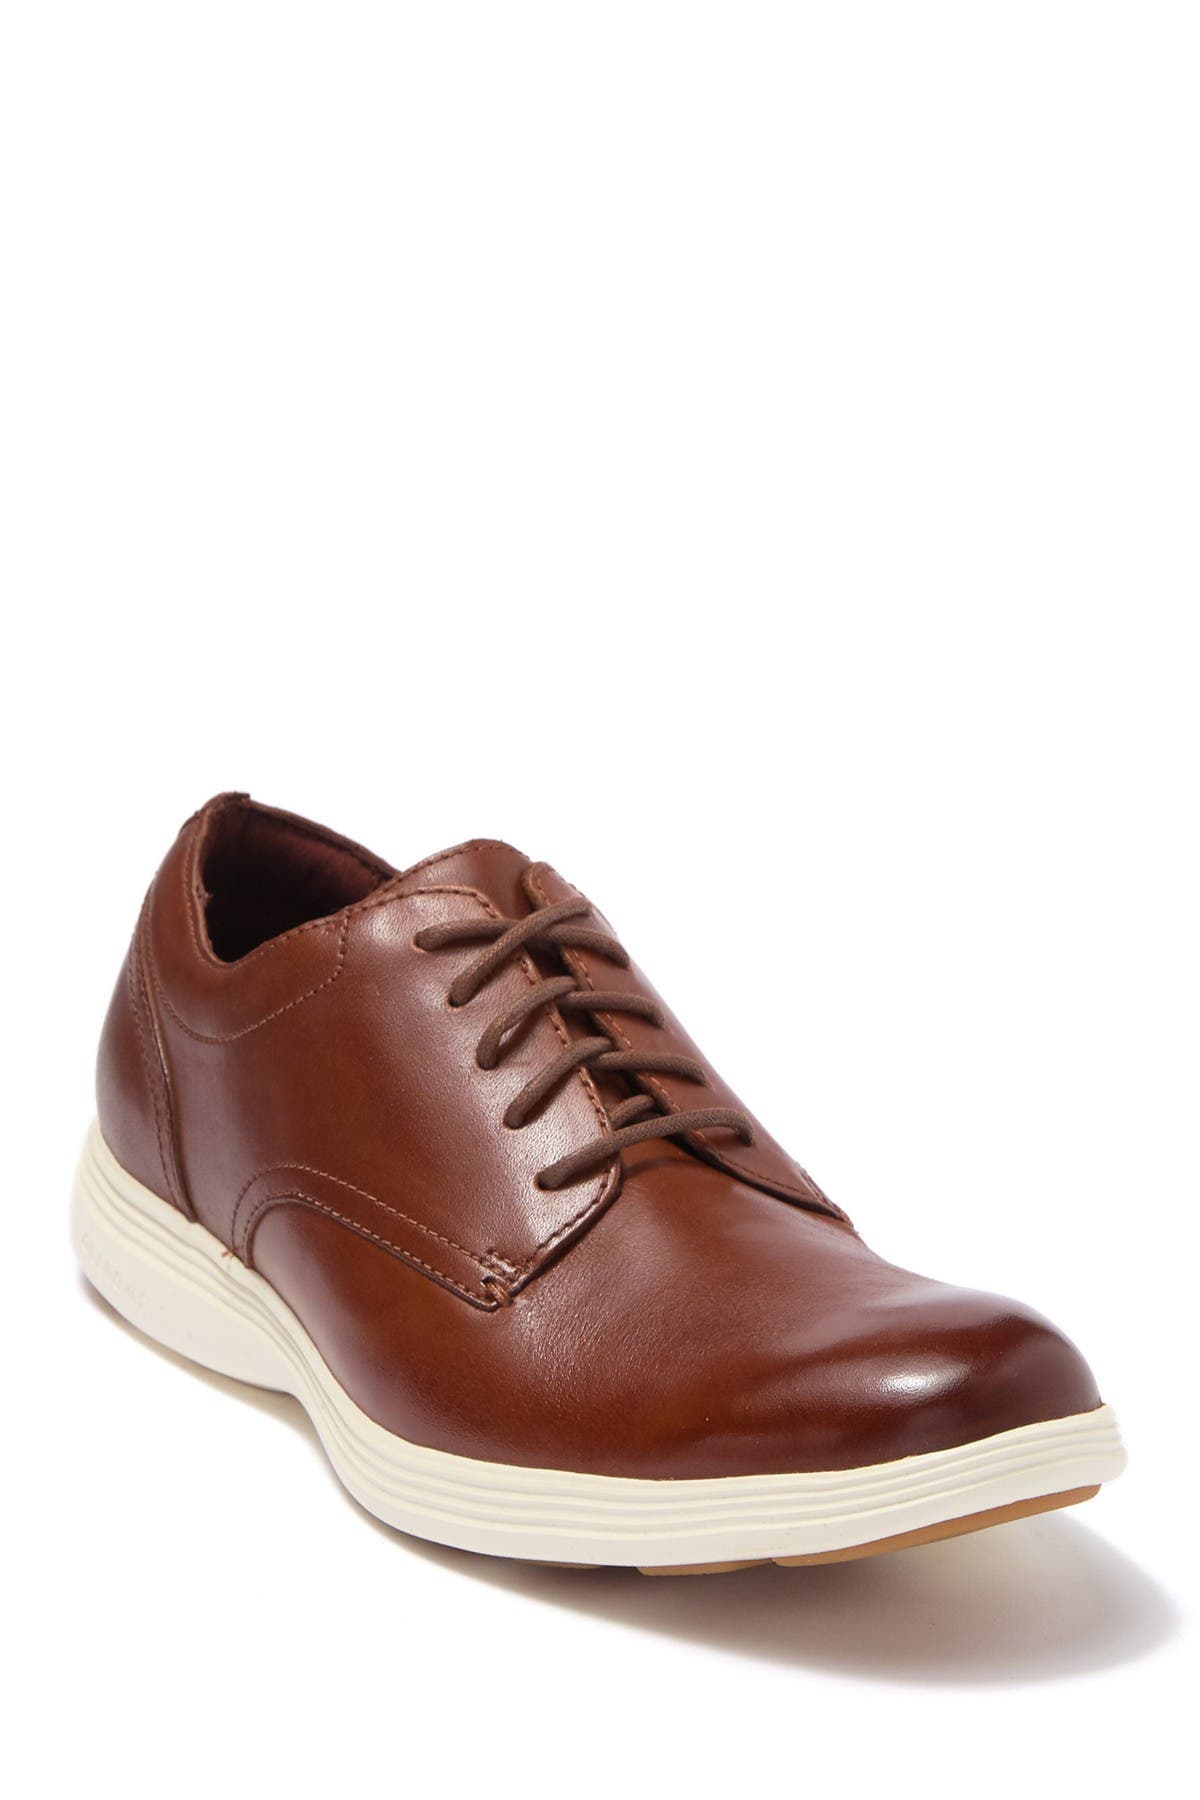 Image of Cole Haan Grand Tour Plain Oxford